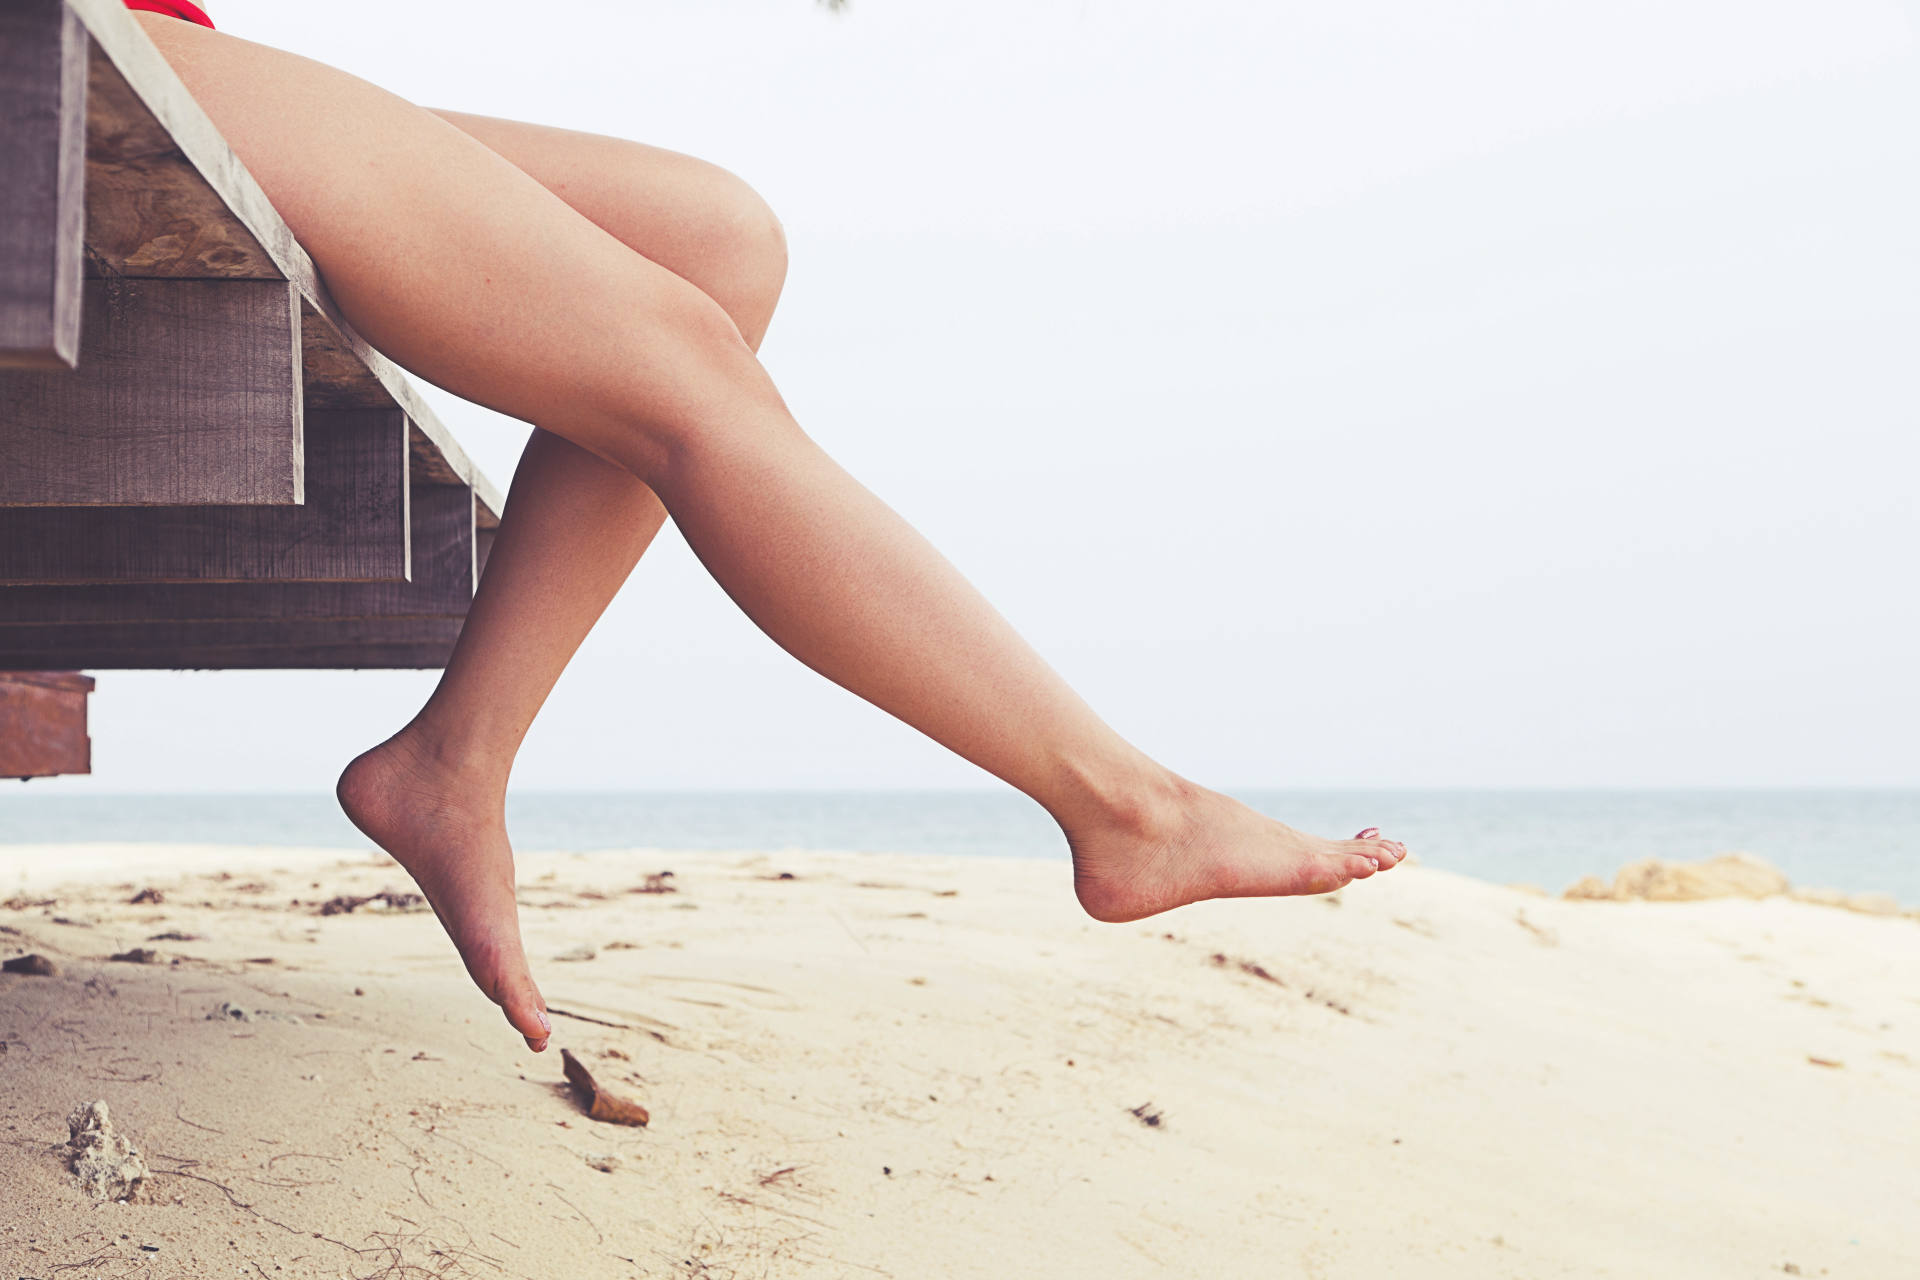 What Should I Do Before Getting My Spider Veins Treated?